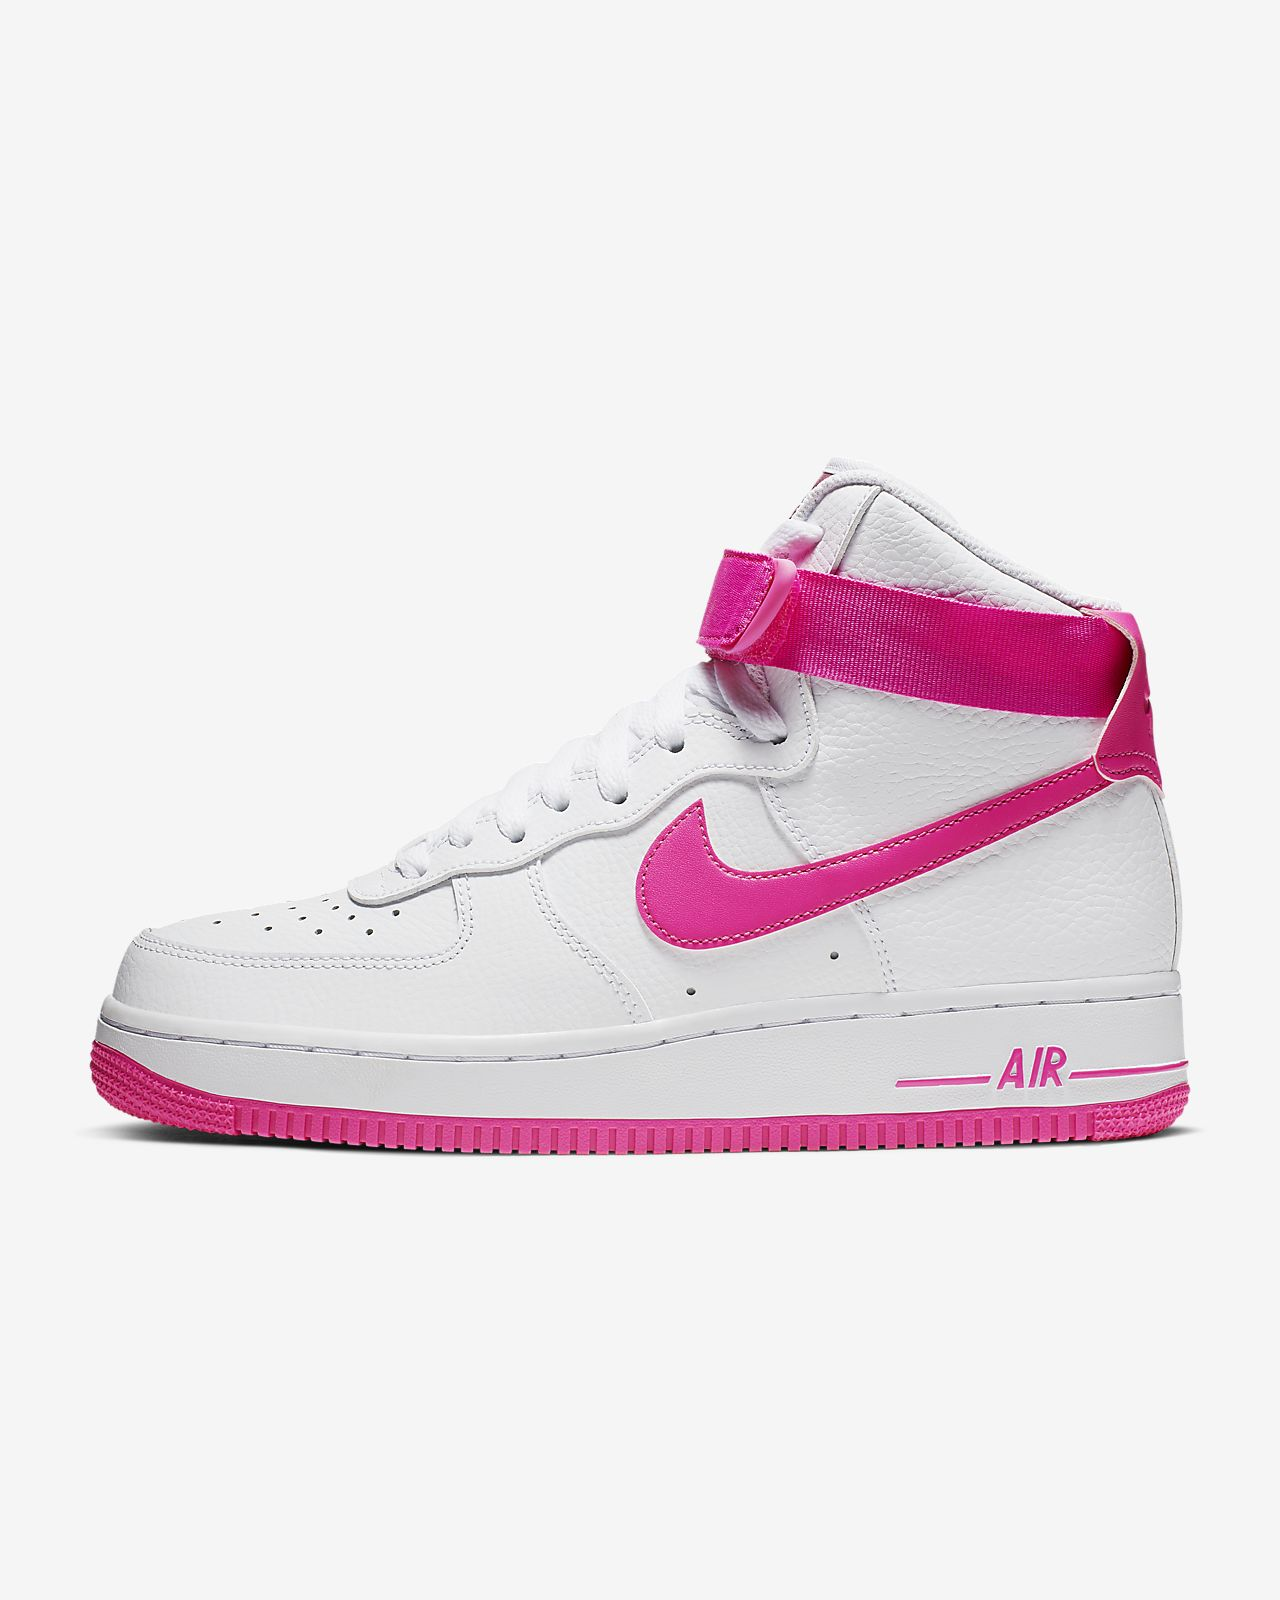 Nike Air Force 1 High 08 LE női cipő